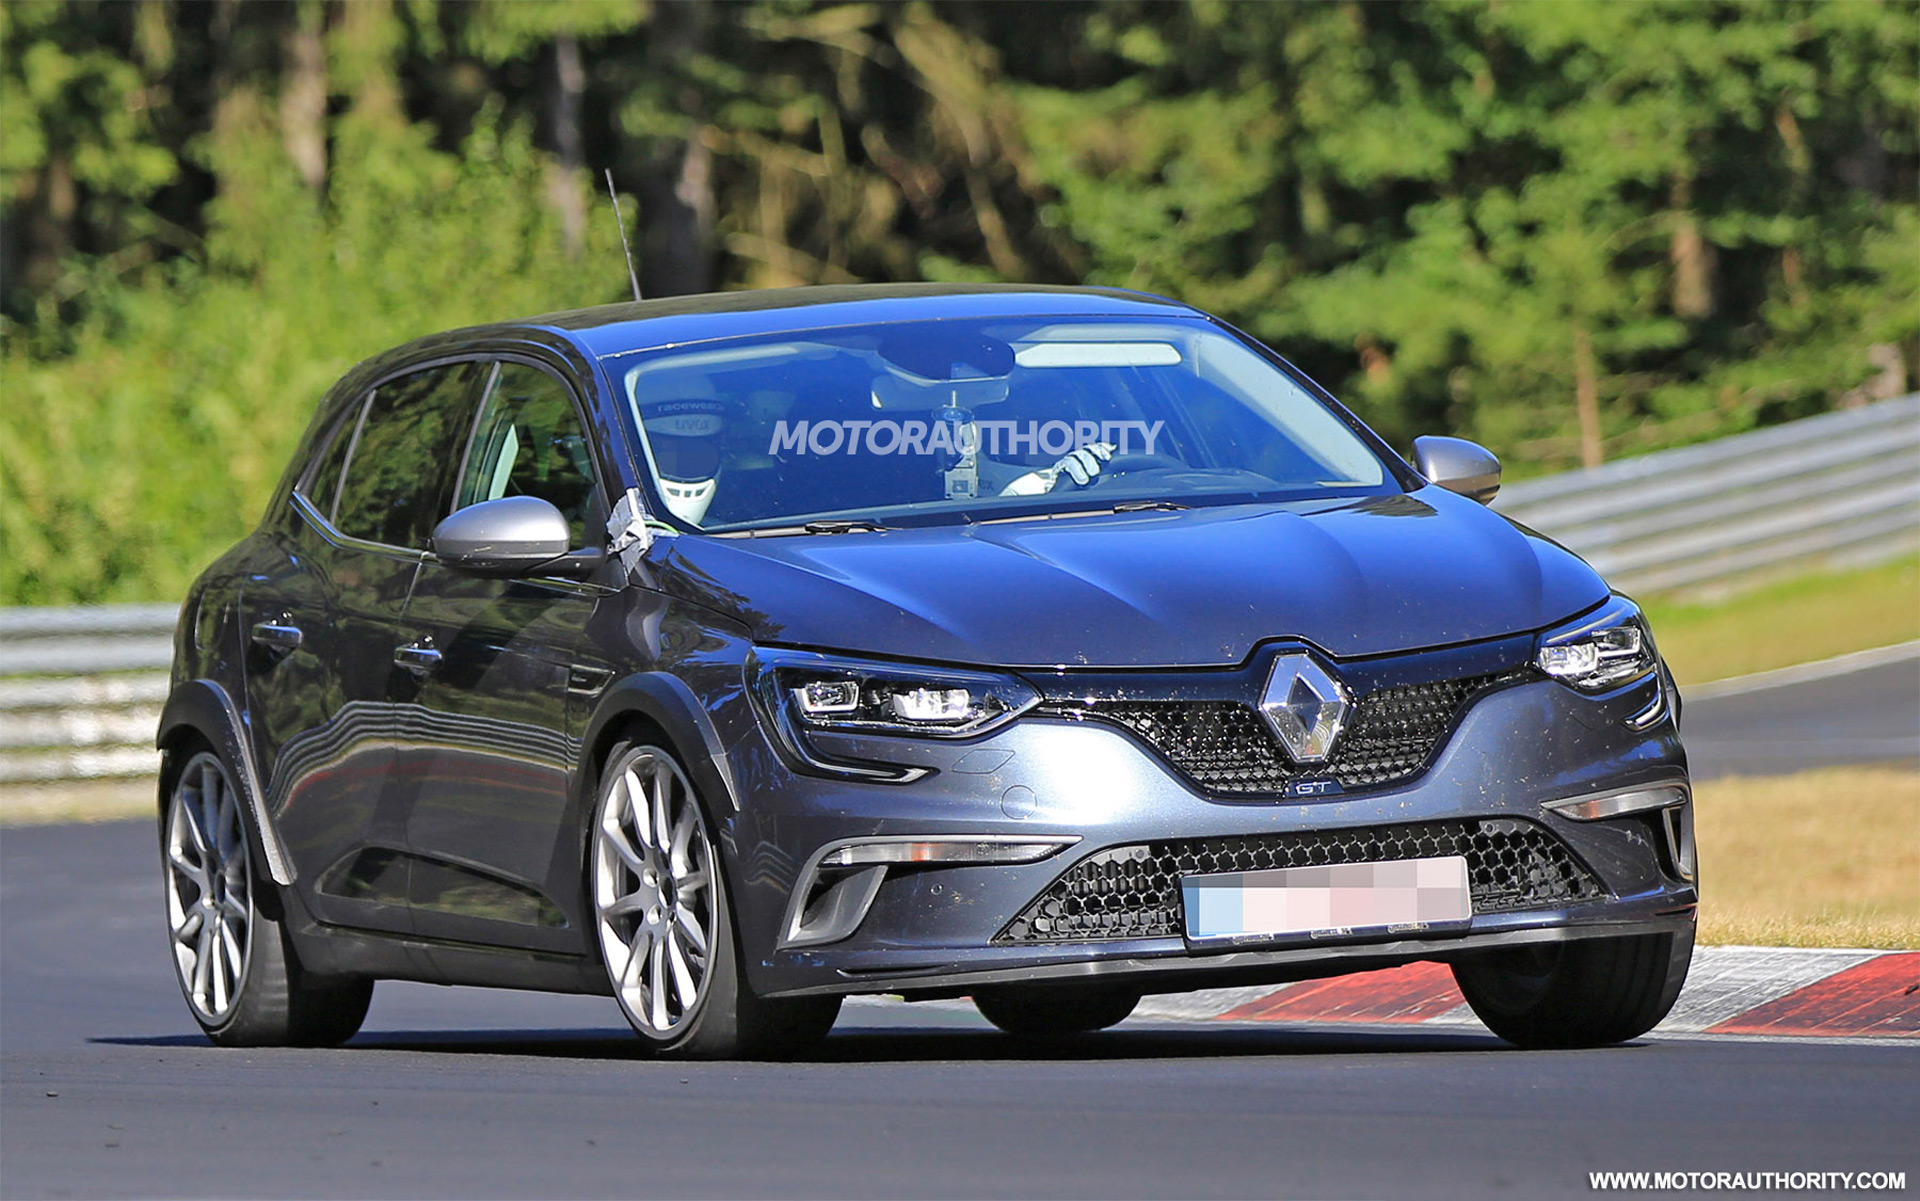 2018 renault m gane rs spy shots. Black Bedroom Furniture Sets. Home Design Ideas